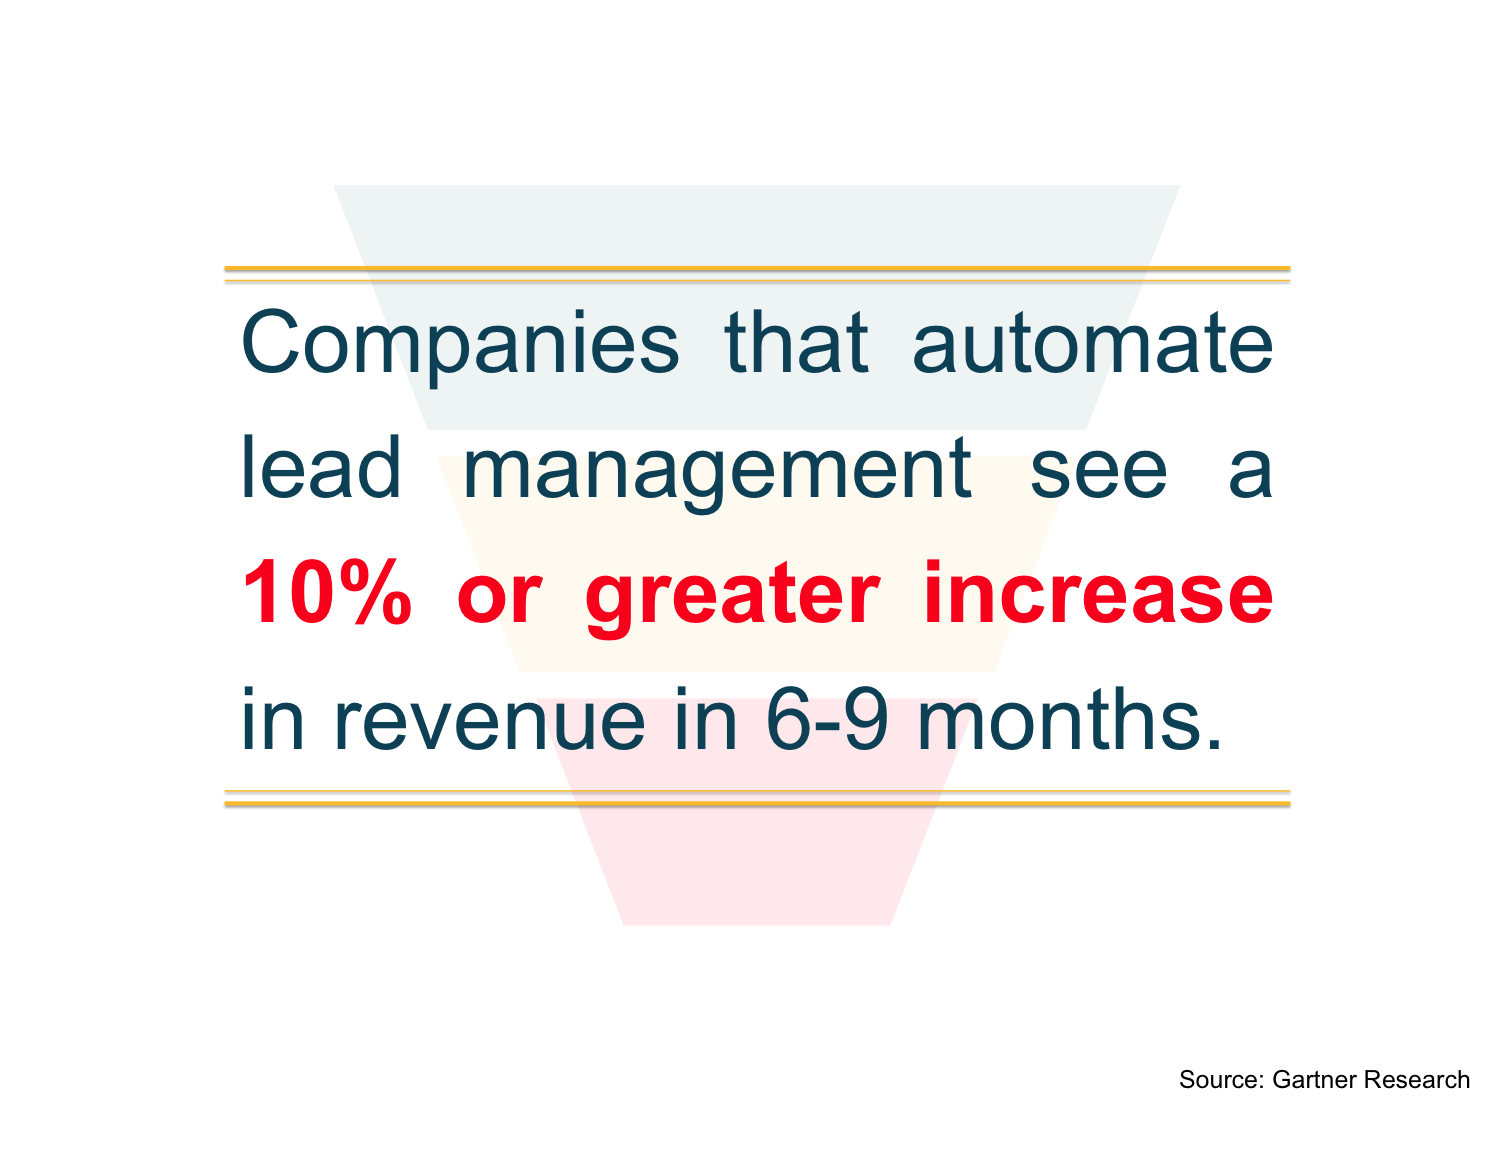 companies_that_use_automation_increase_revenue_by_10_percent